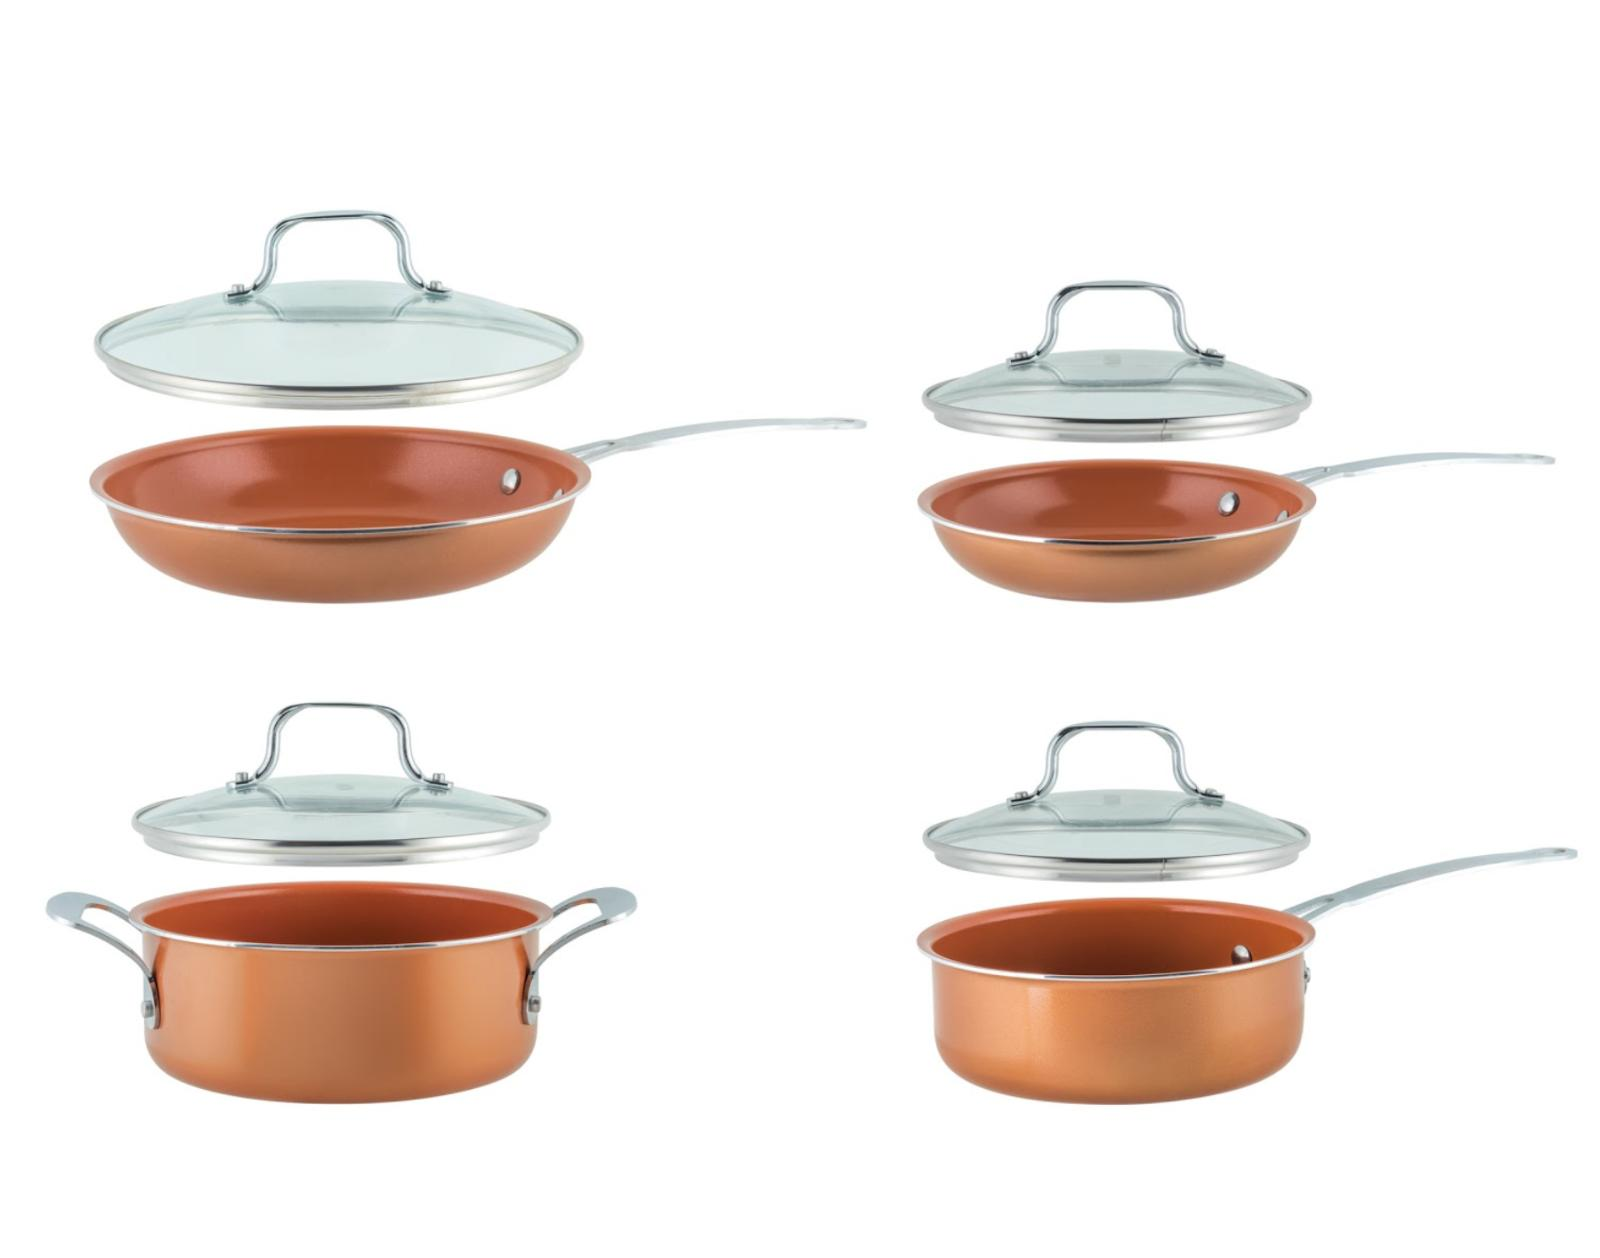 8 Piece Non-Stick Coated Cookware Set